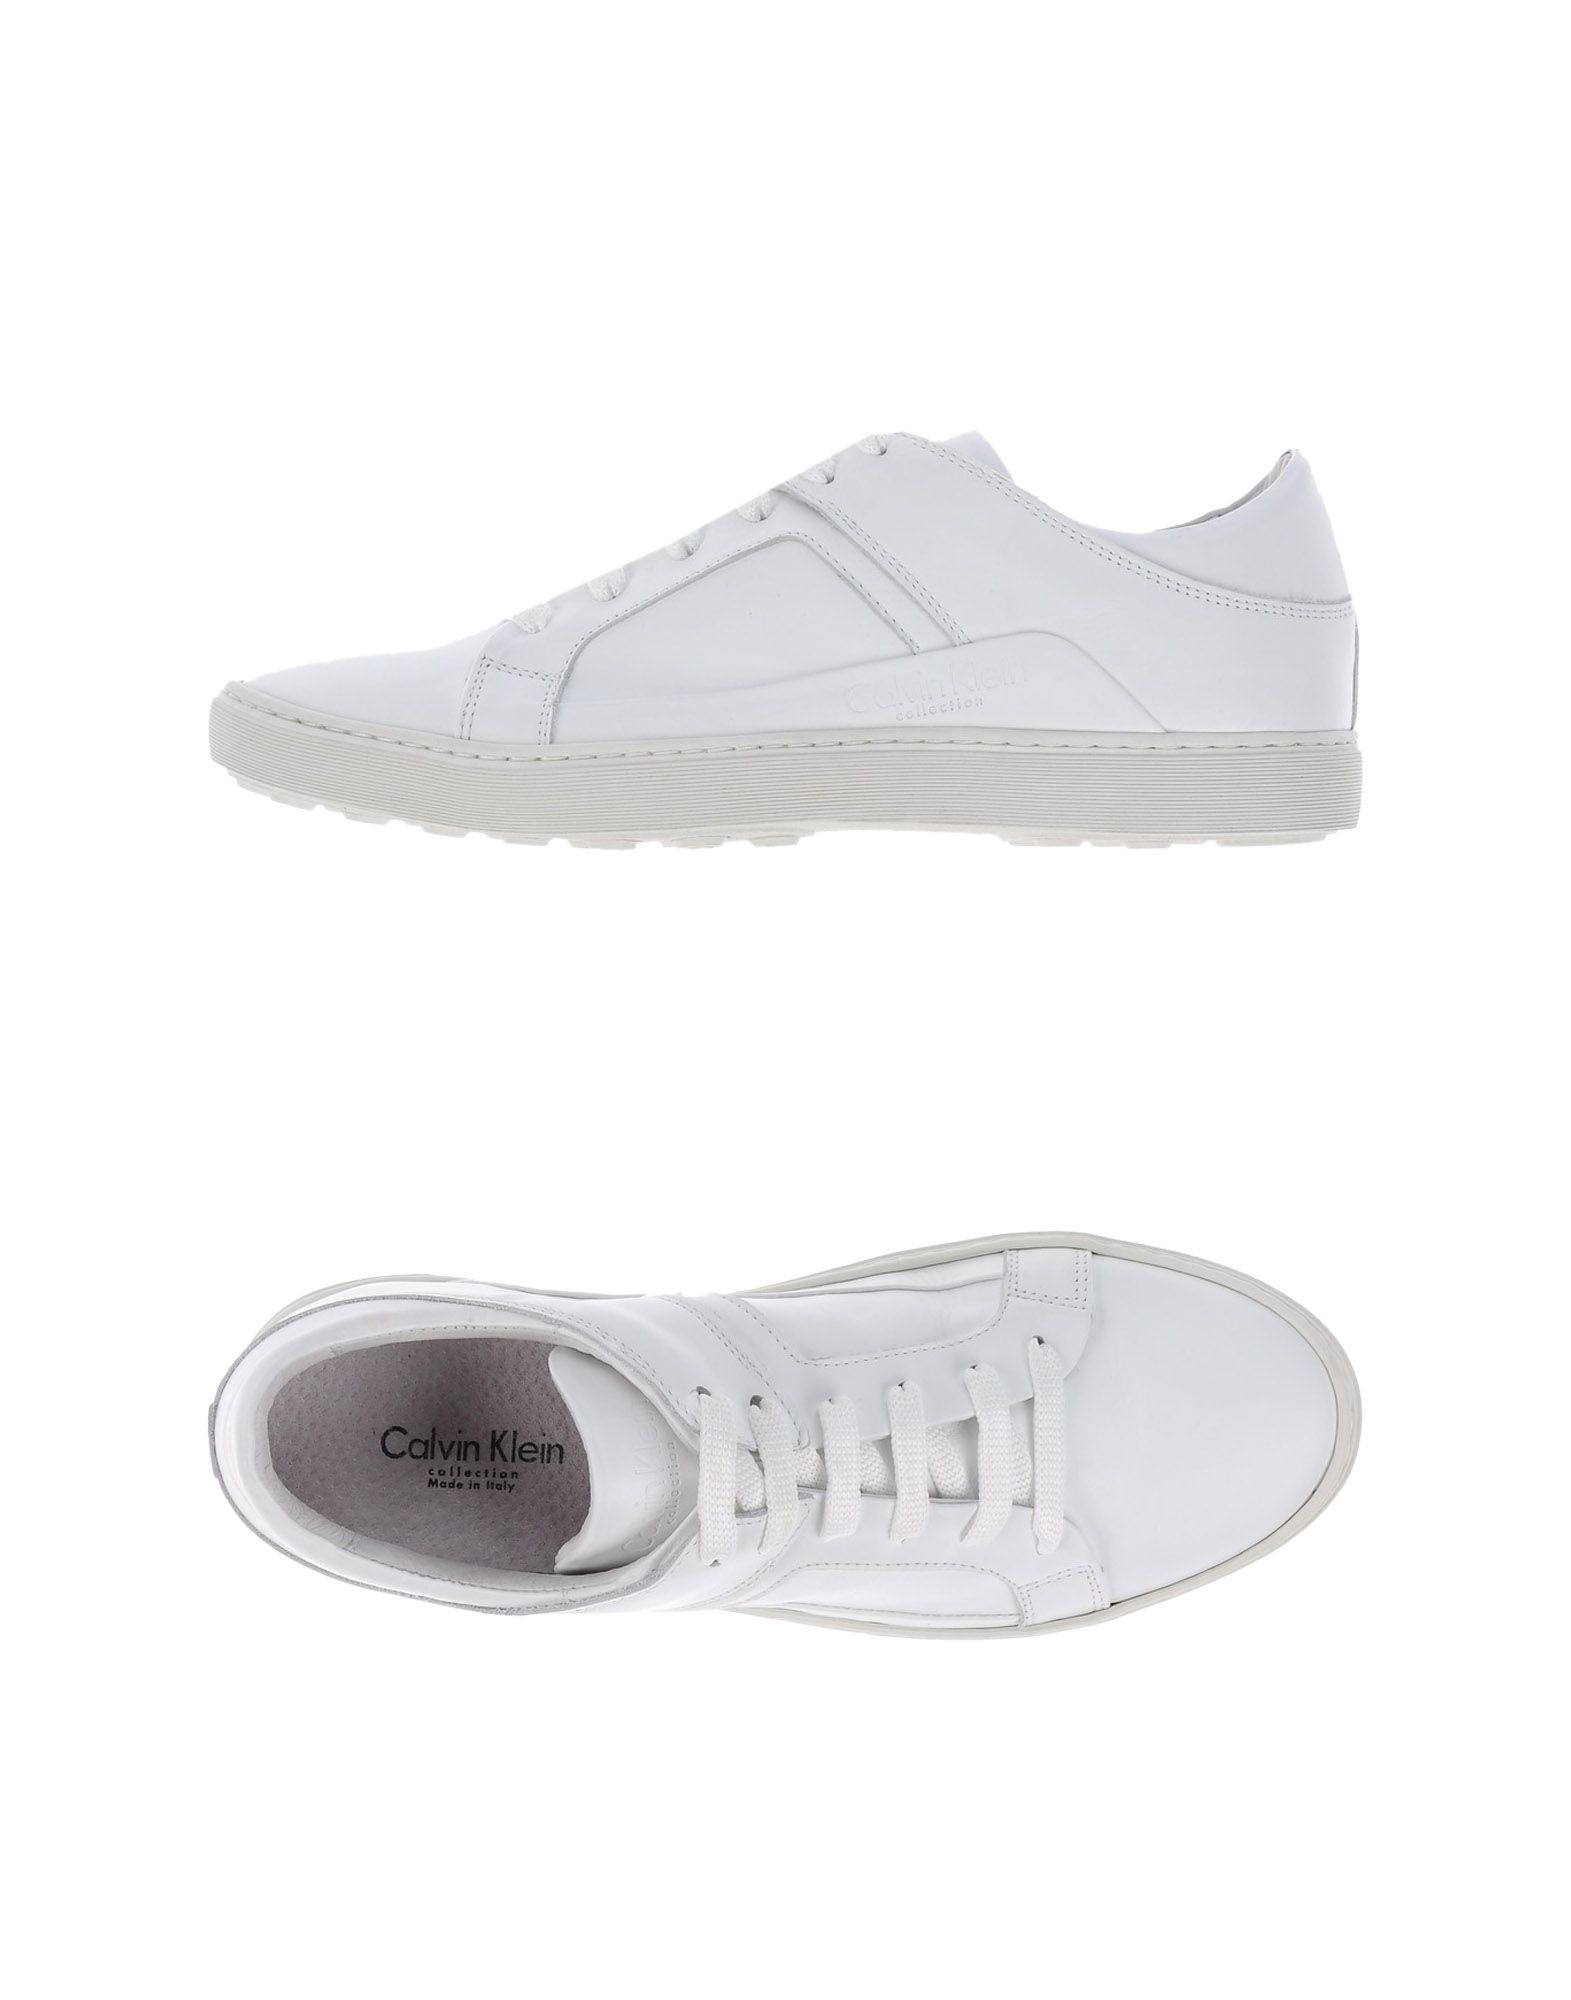 calvin klein low tops trainers in white for men lyst. Black Bedroom Furniture Sets. Home Design Ideas